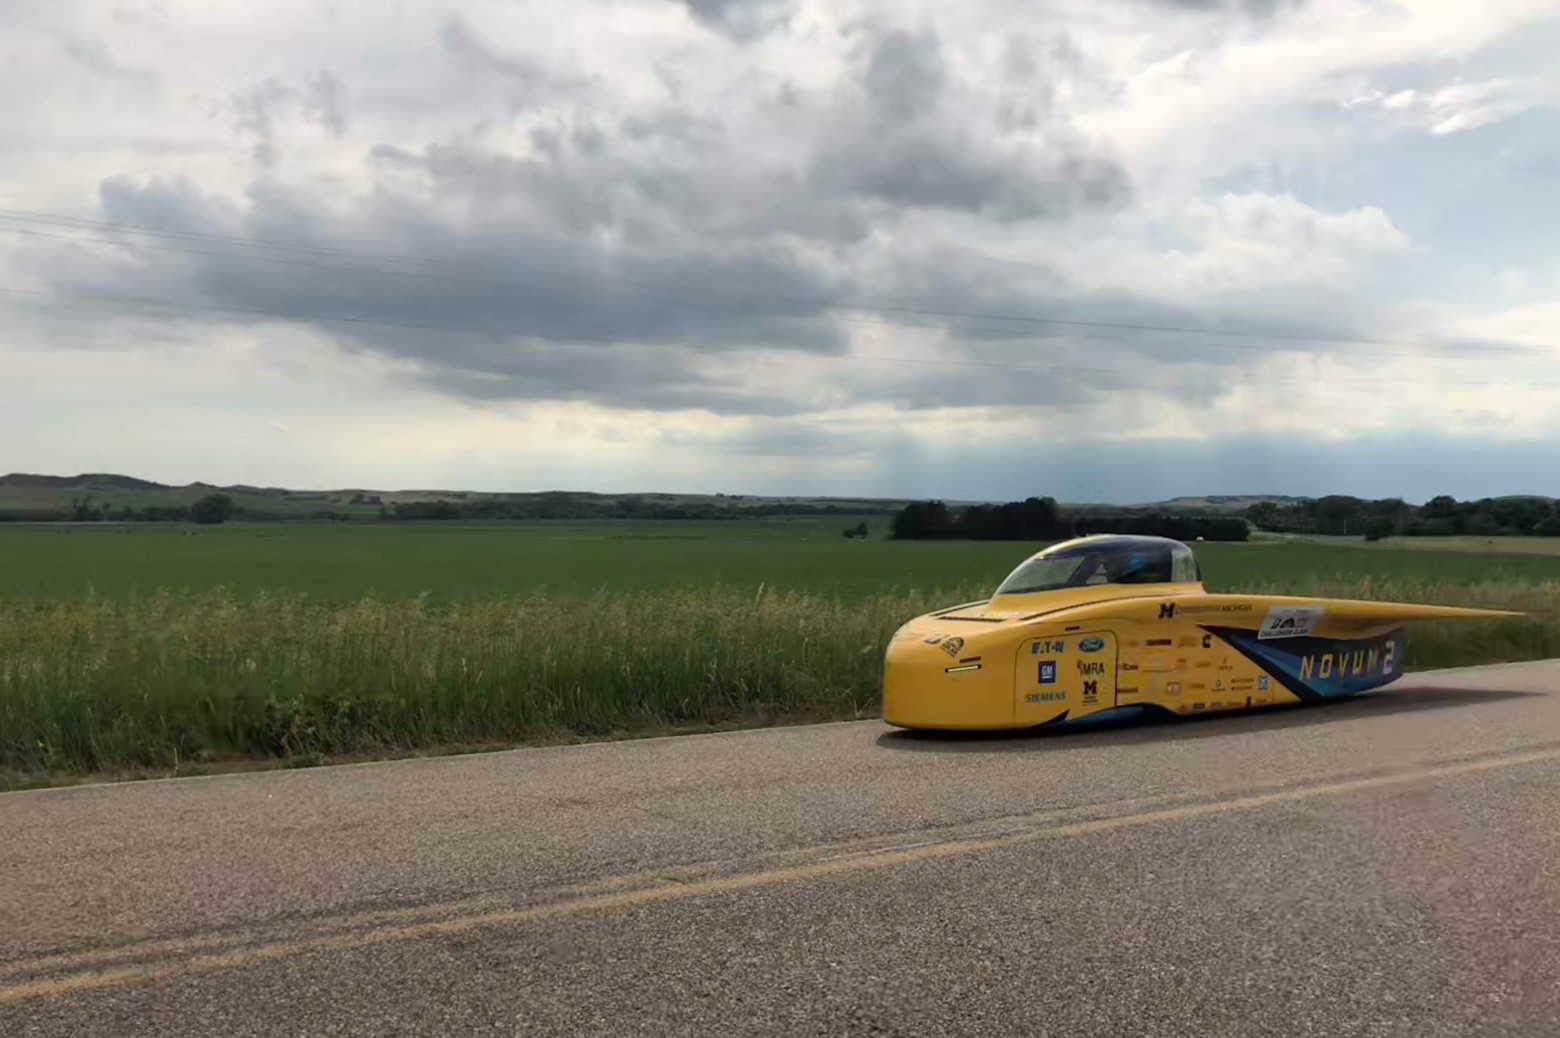 The University of Michigan solar car Novum contends with clouds during a practice run on the American Solar Challenge race route.